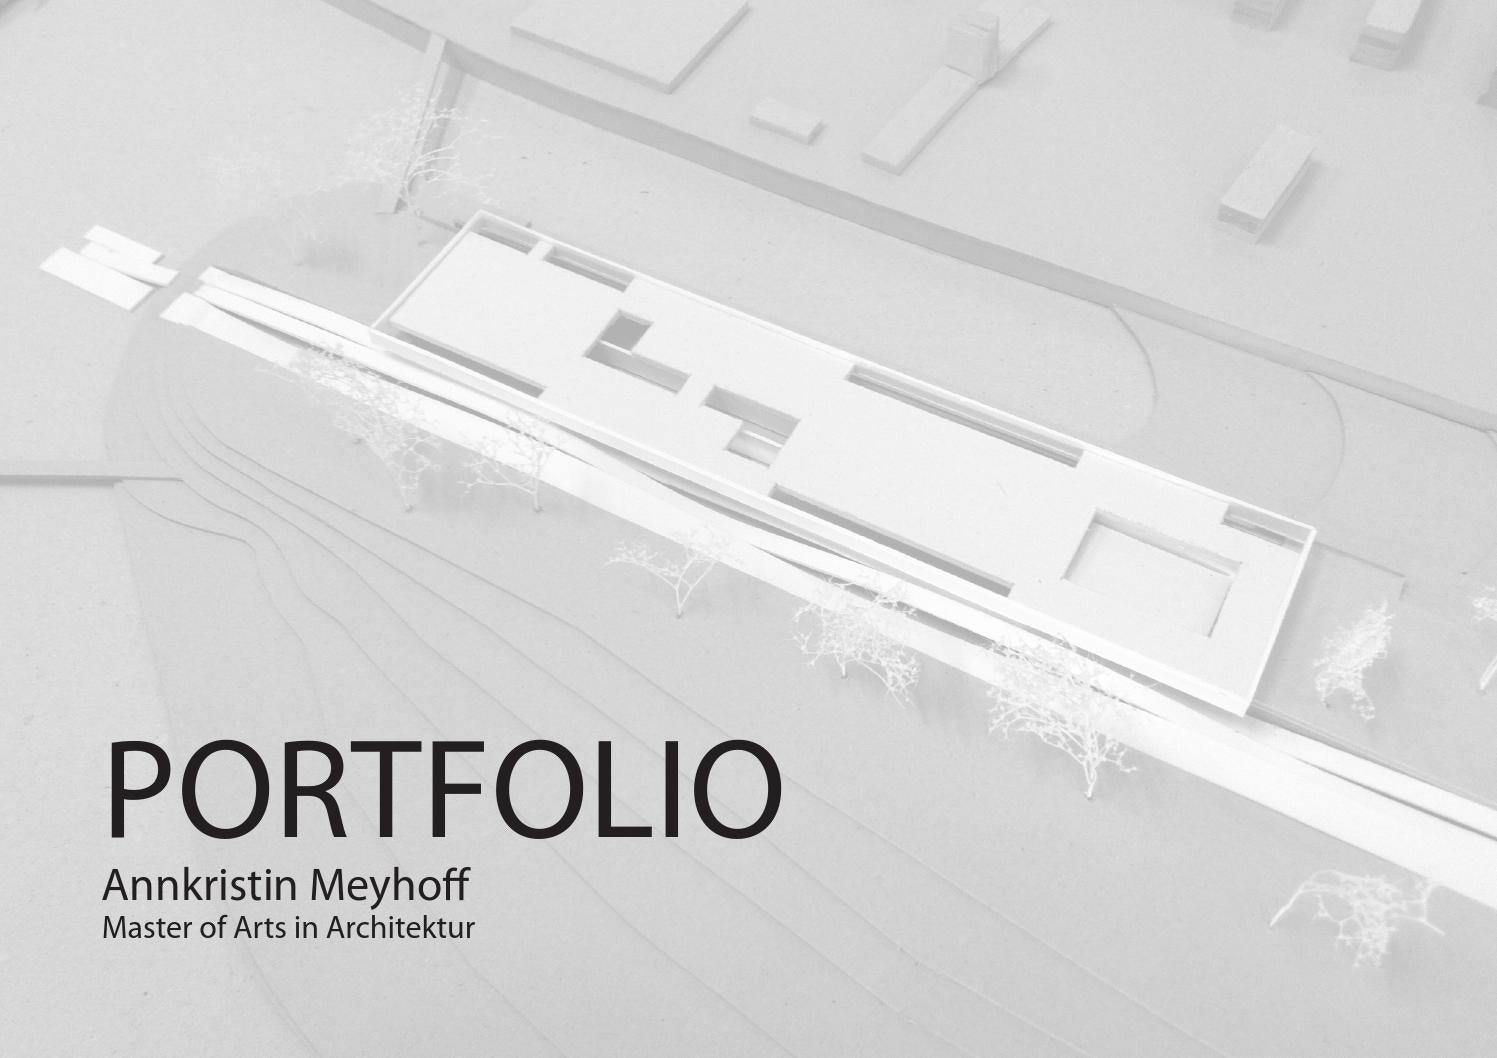 Architektur portfolio 2015 by annkristin meyhoff issuu for Innenarchitektur portfolio